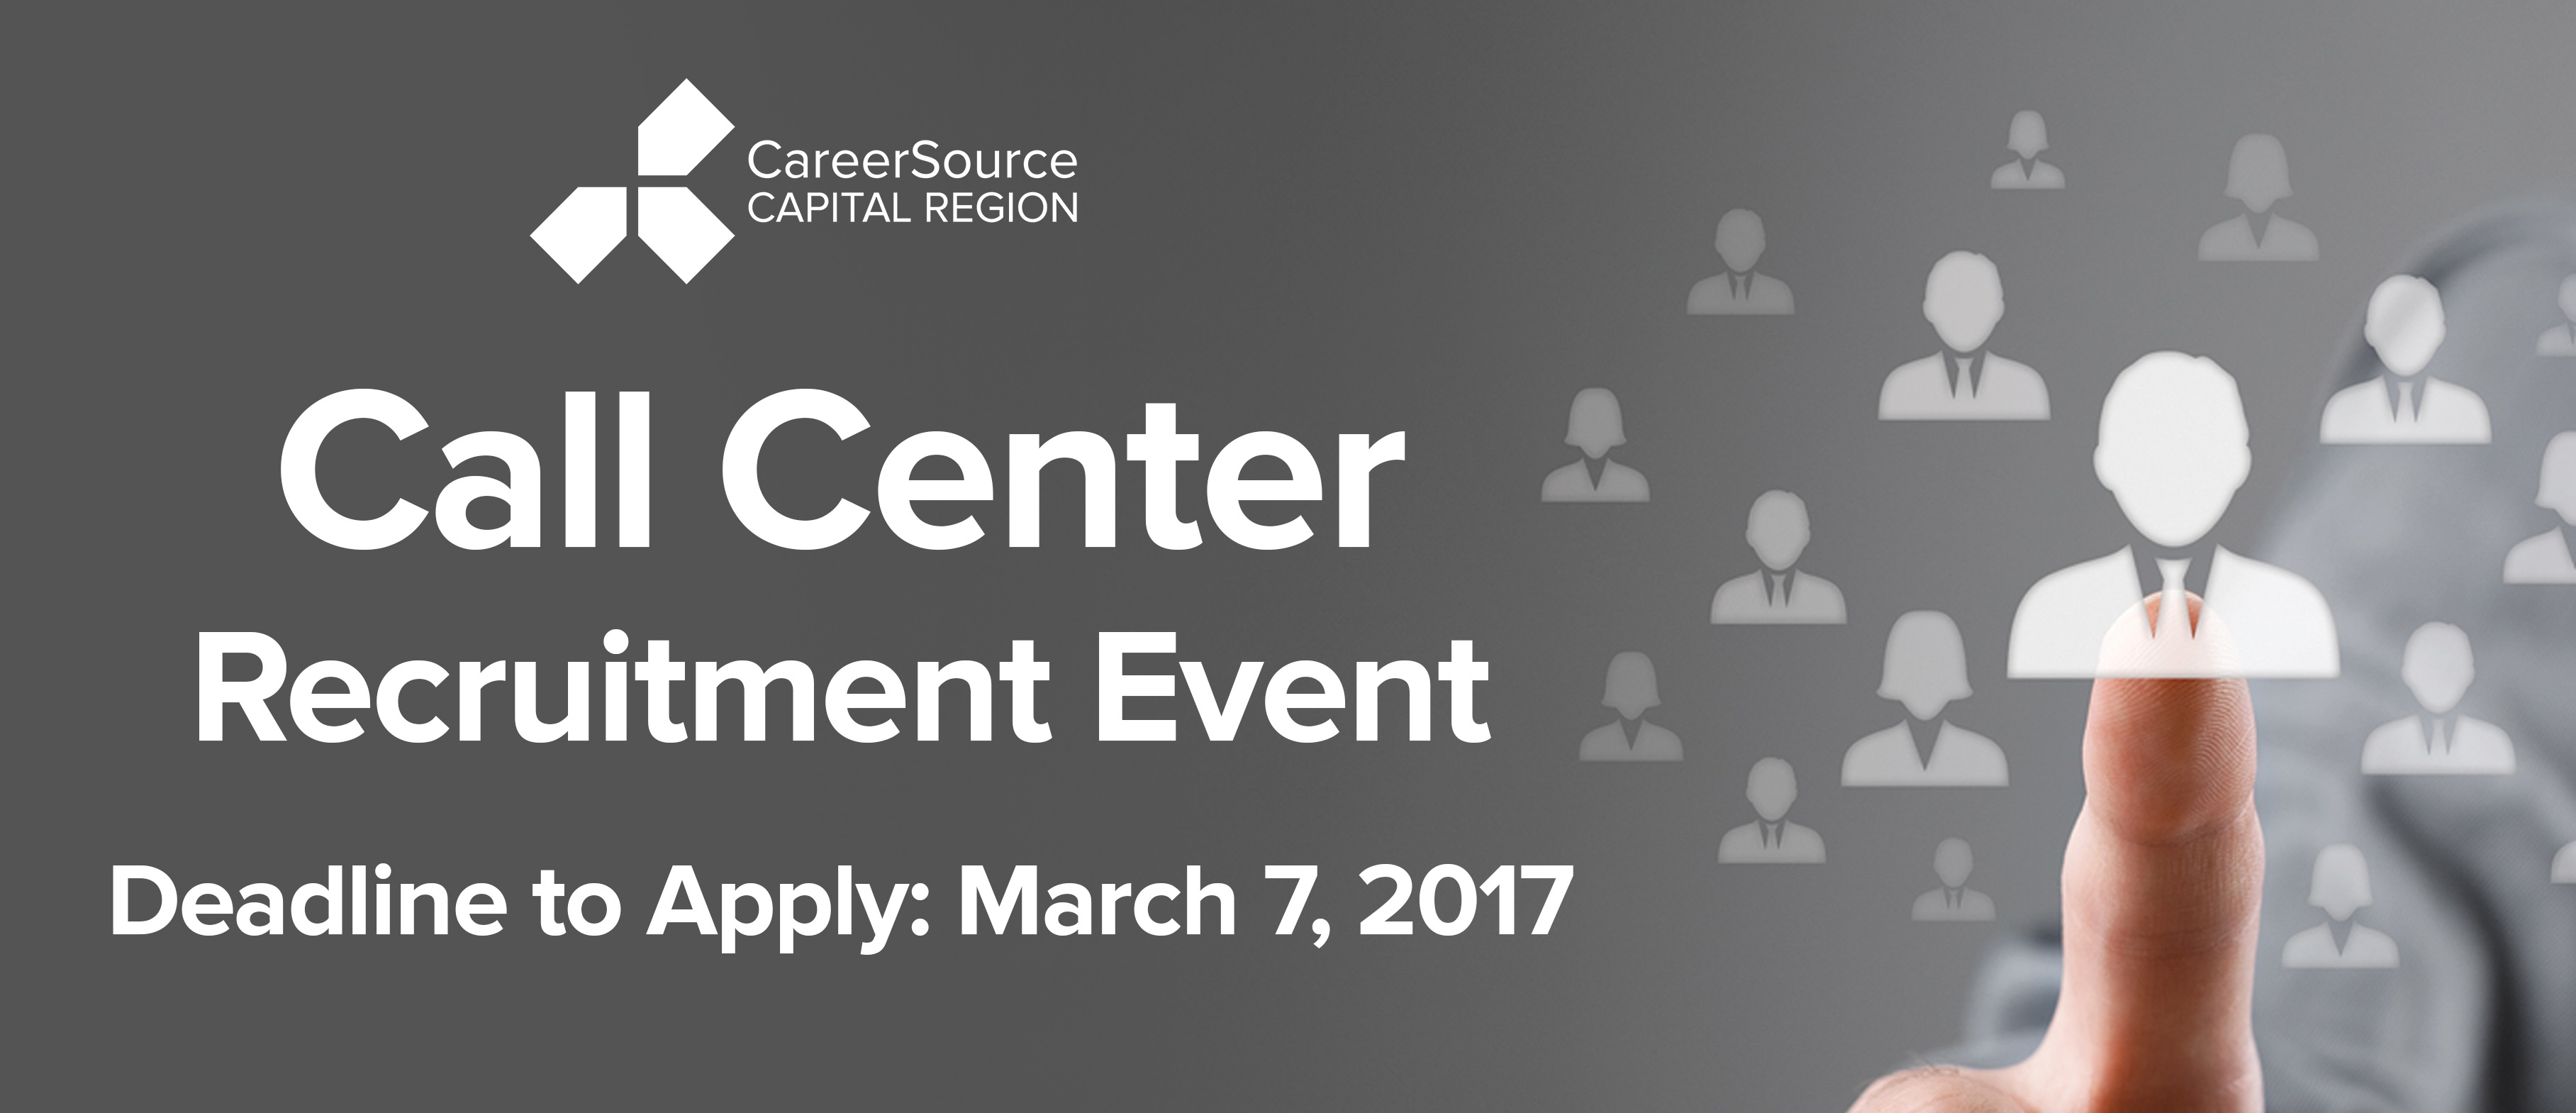 Call Center Representatives Recruitment Event